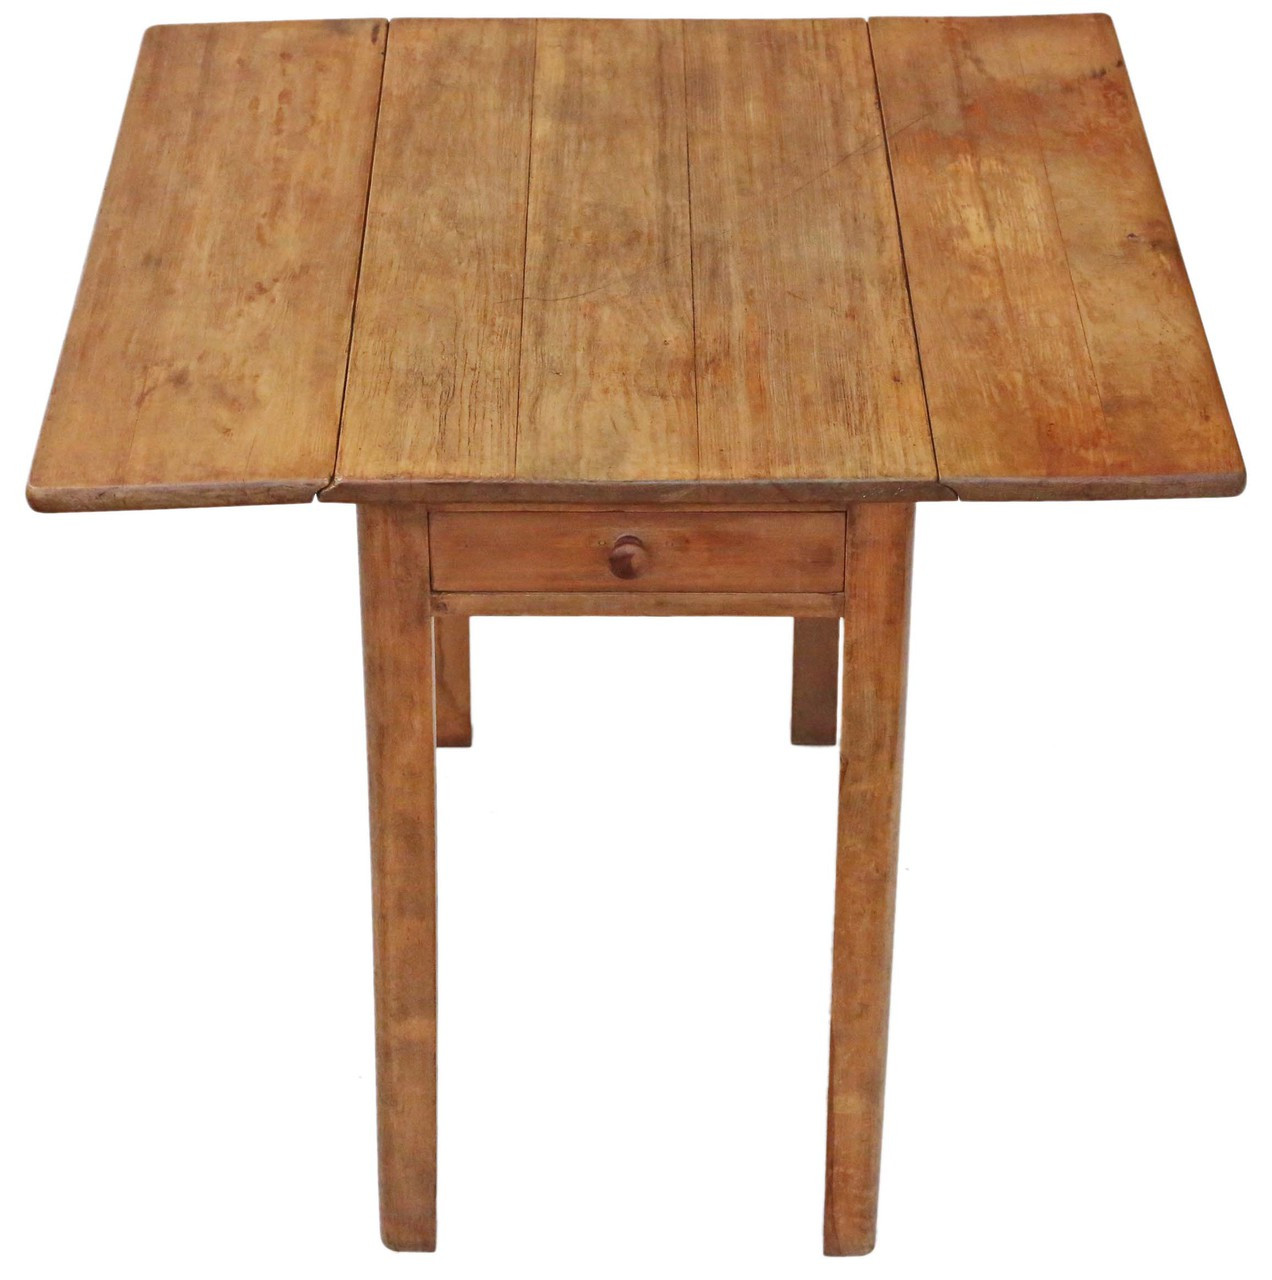 Antique Drop Leaf Scrub Top Pine Kitchen Dining Table With